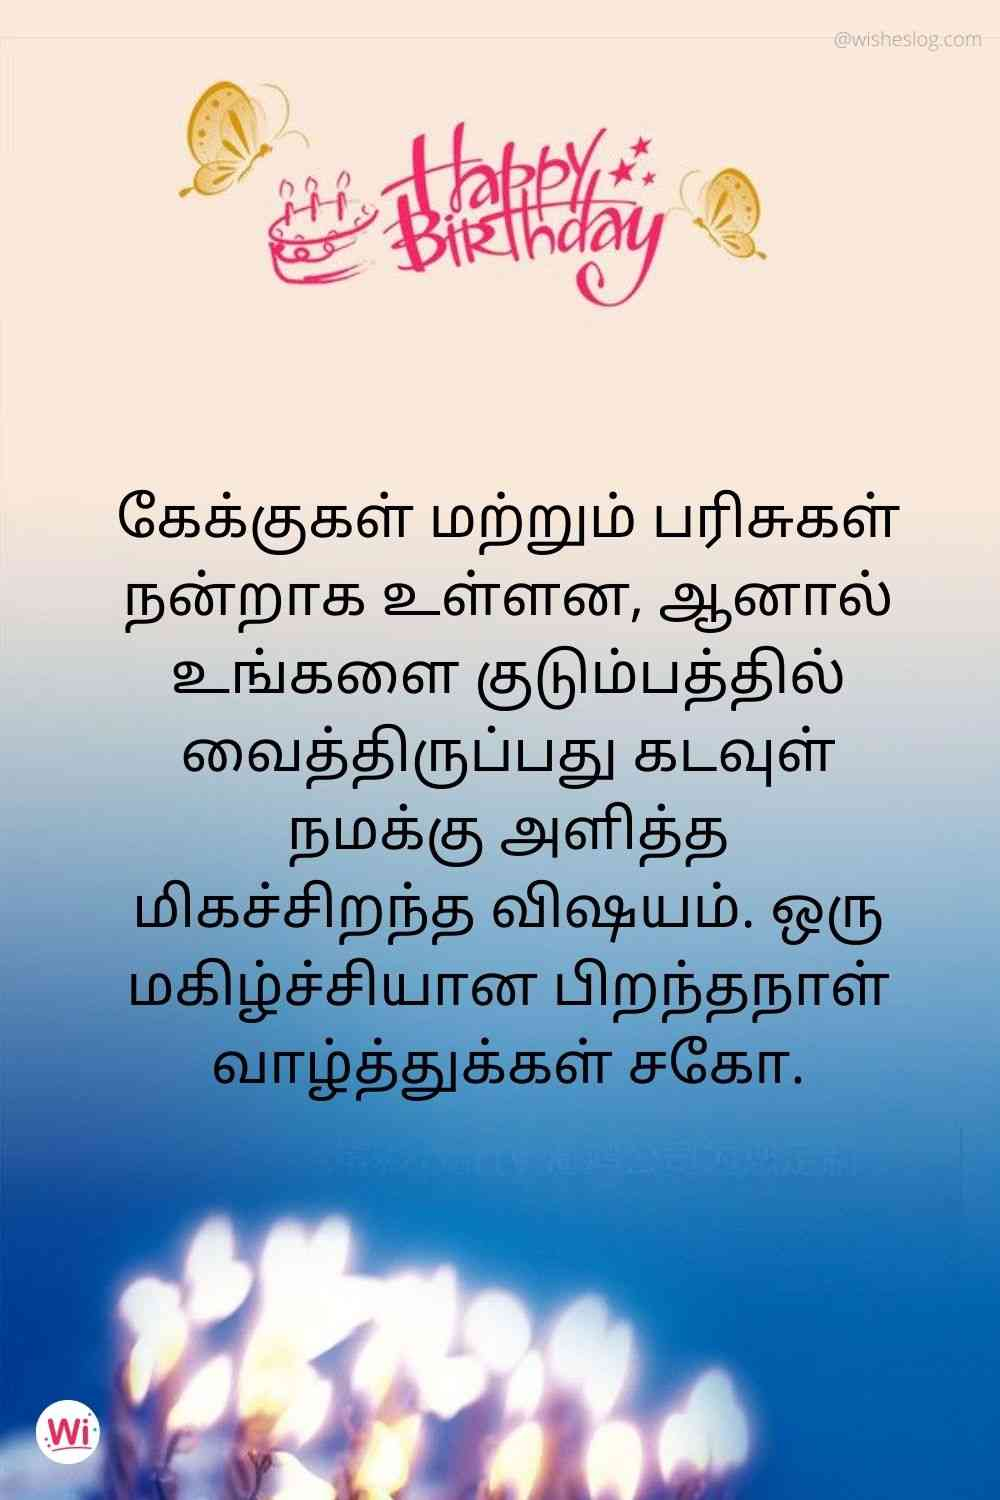 birthday wishes quotes in tamil for brother